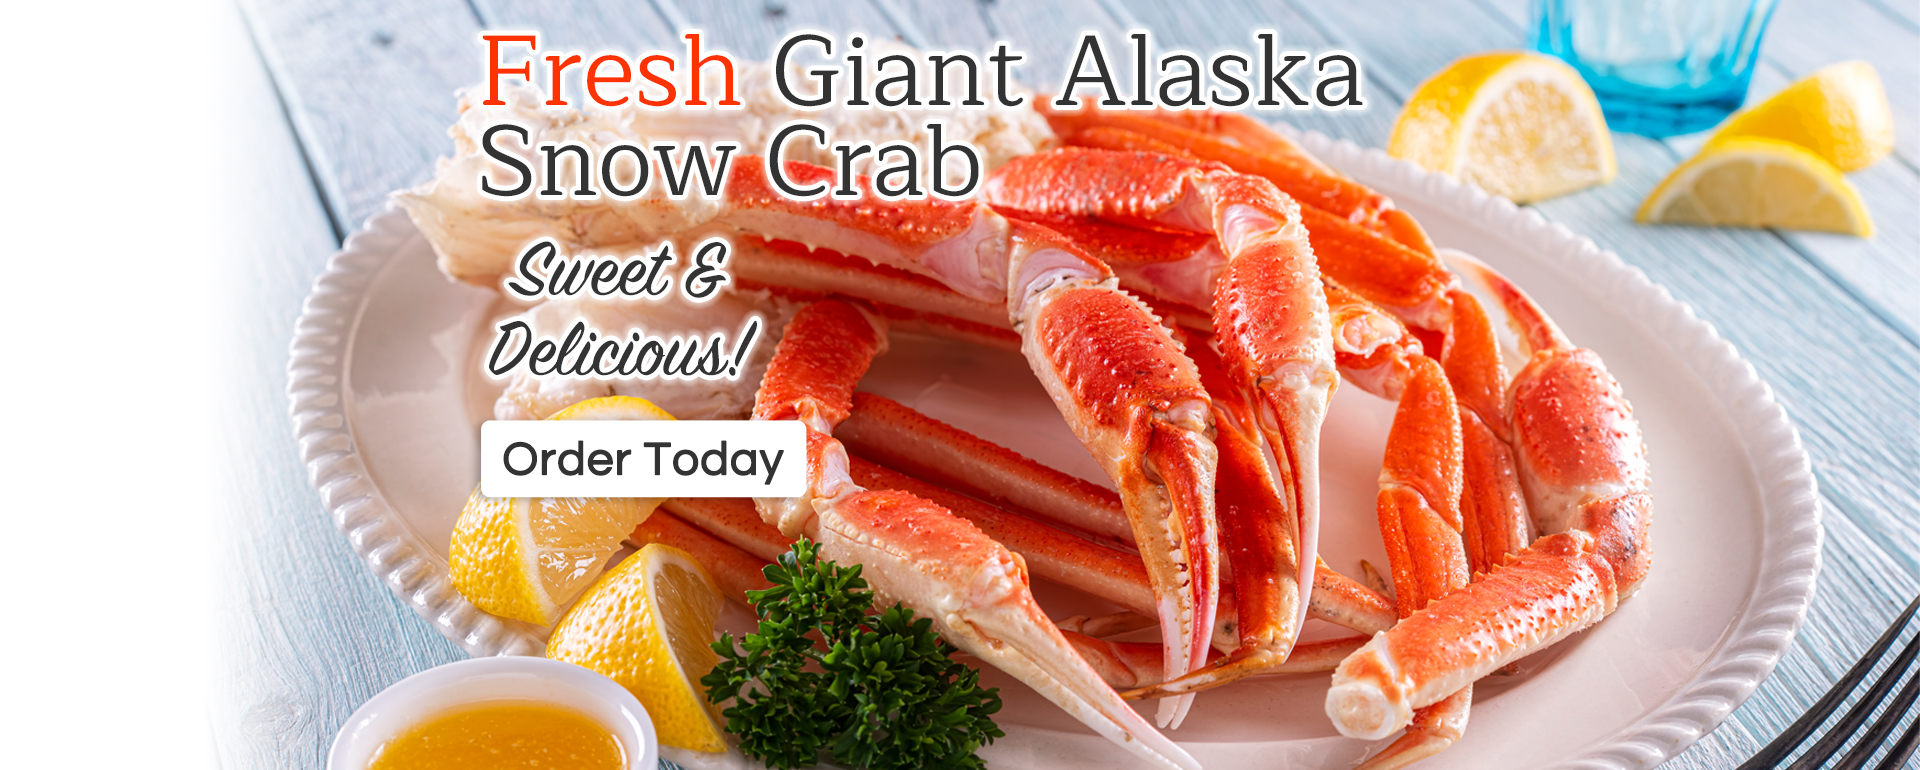 Fresh Giant Alaska Snow Crab